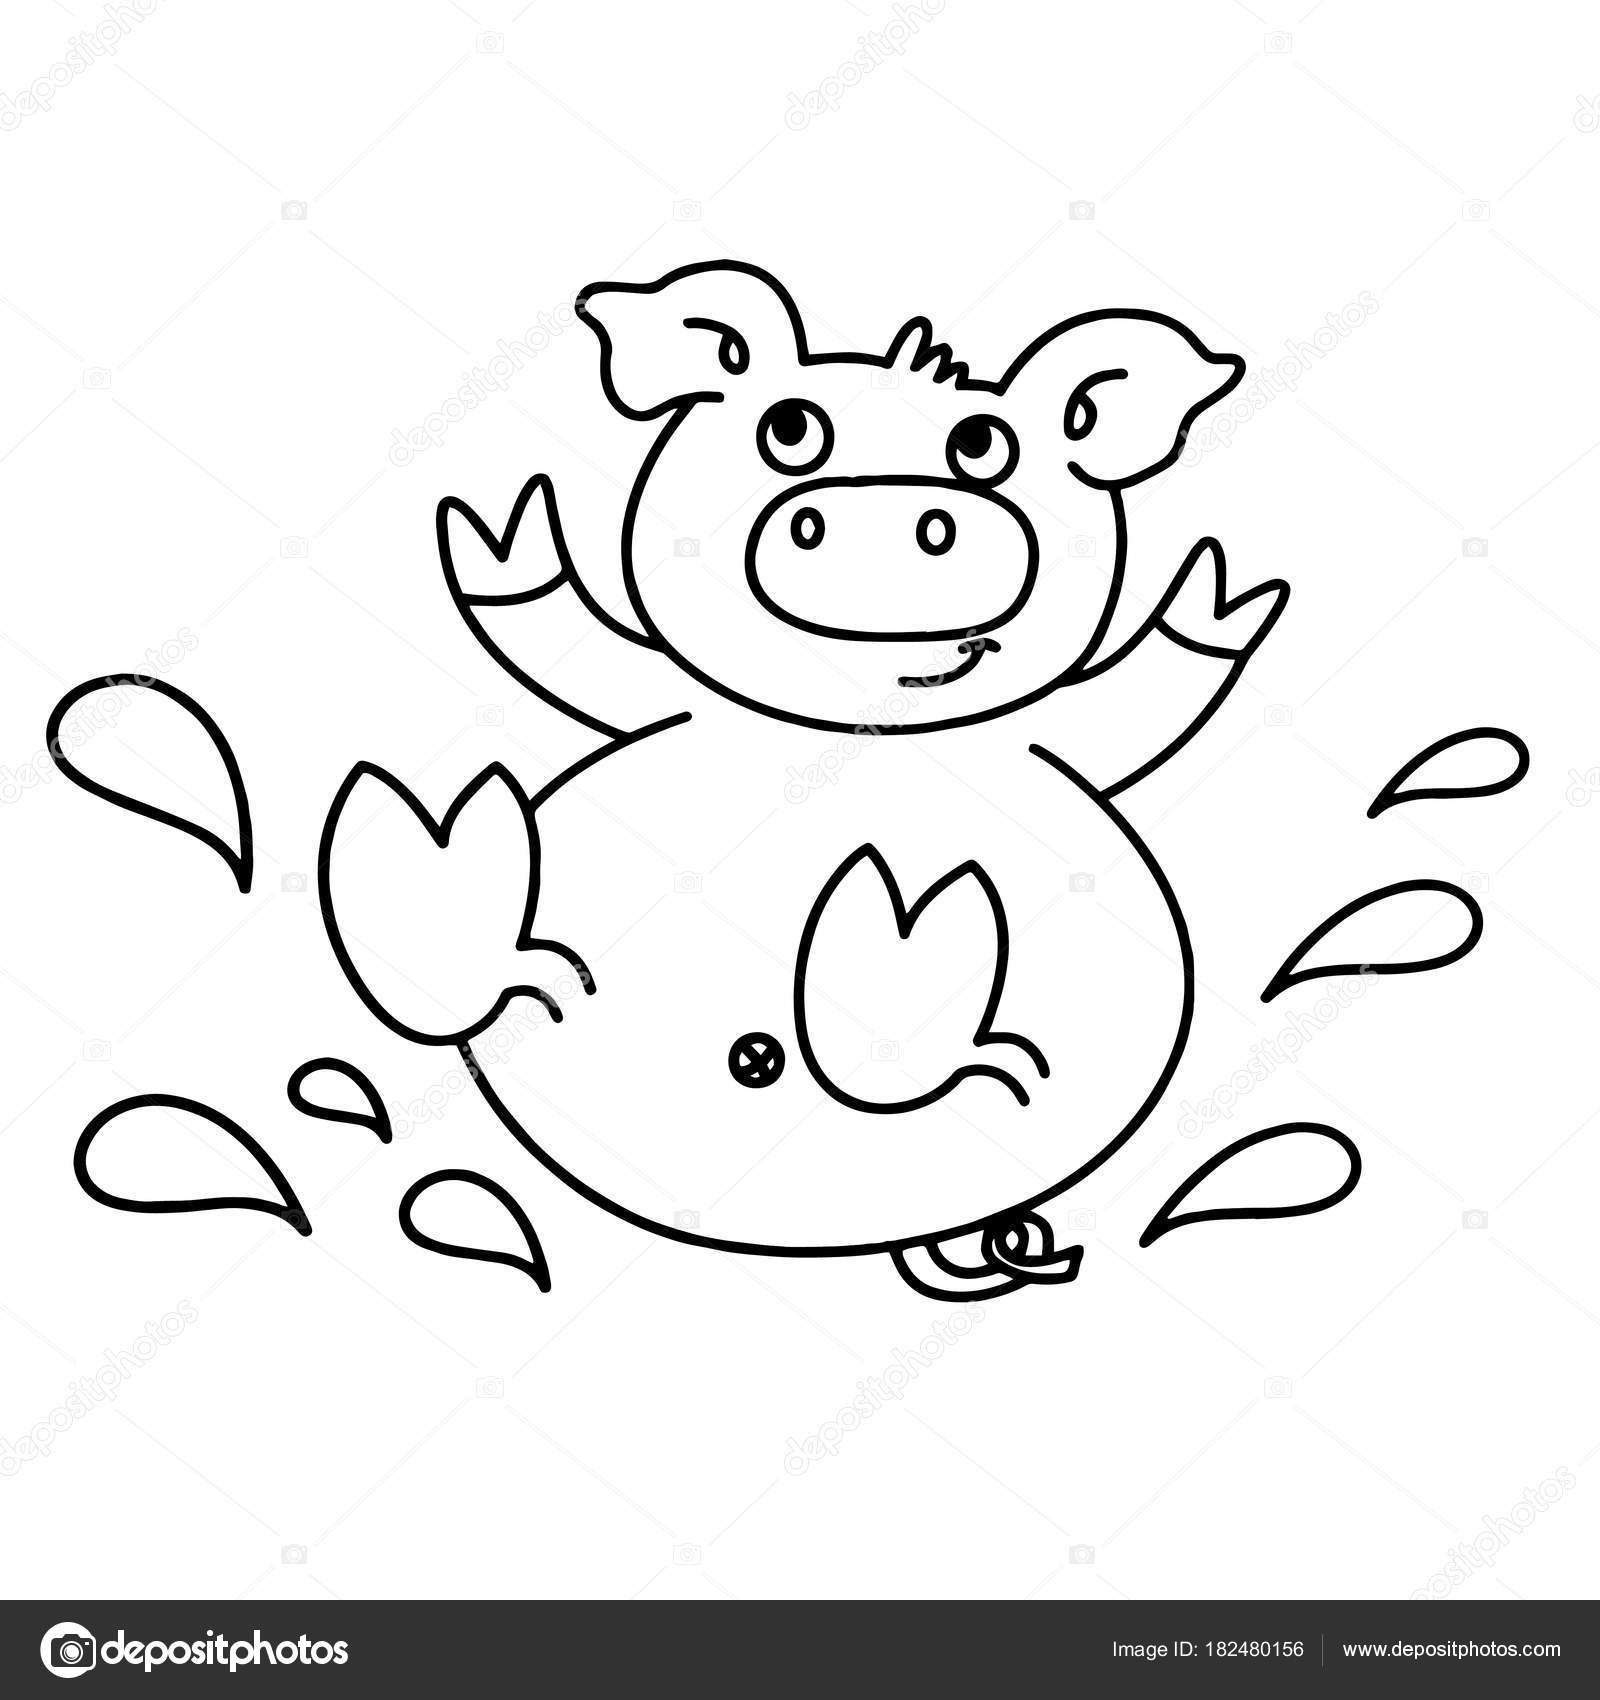 Cute Black And White Pig Clip Art T Drawings Clip Art